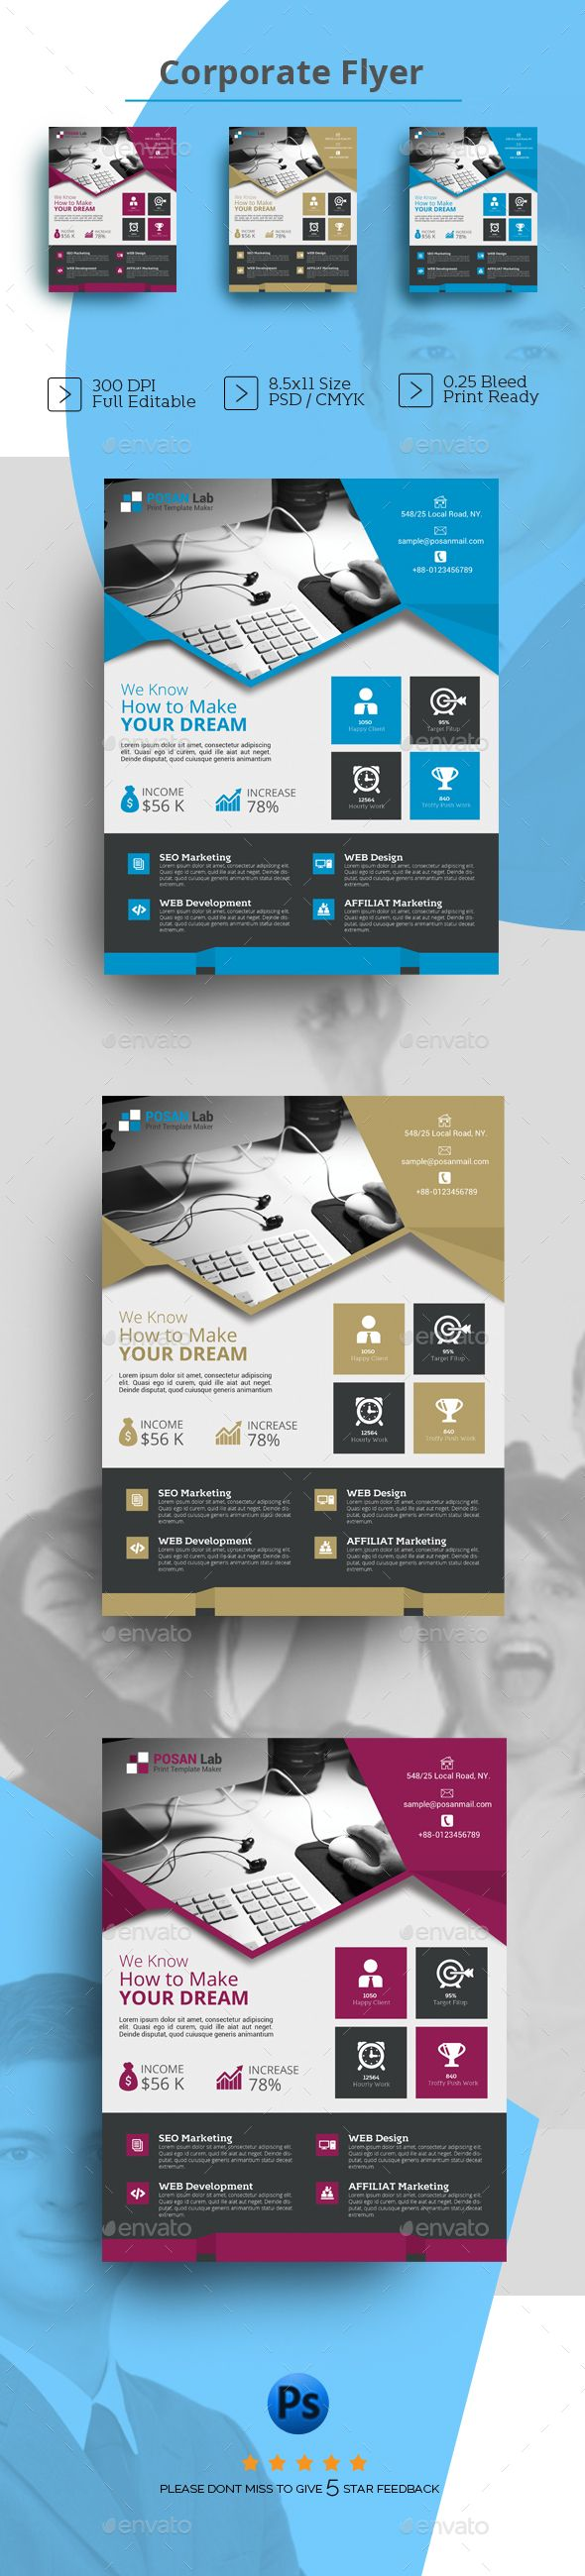 Flyers — Photoshop PSD #creative flyer #free • Available here → https://graphicriver.net/item/flyers-/16685907?ref=pxcr